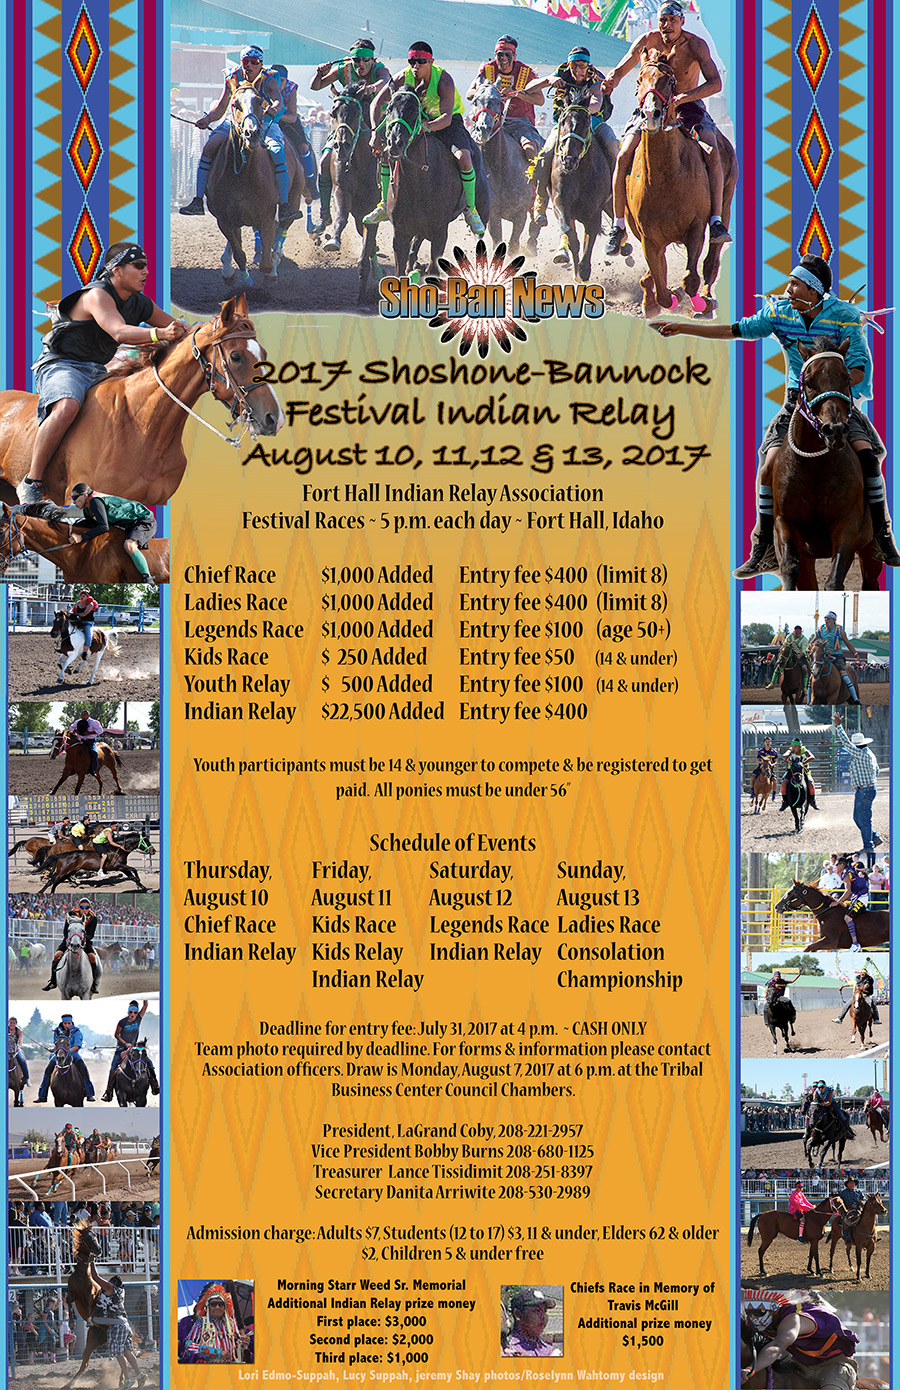 Festival Indian Relay Racing 2017